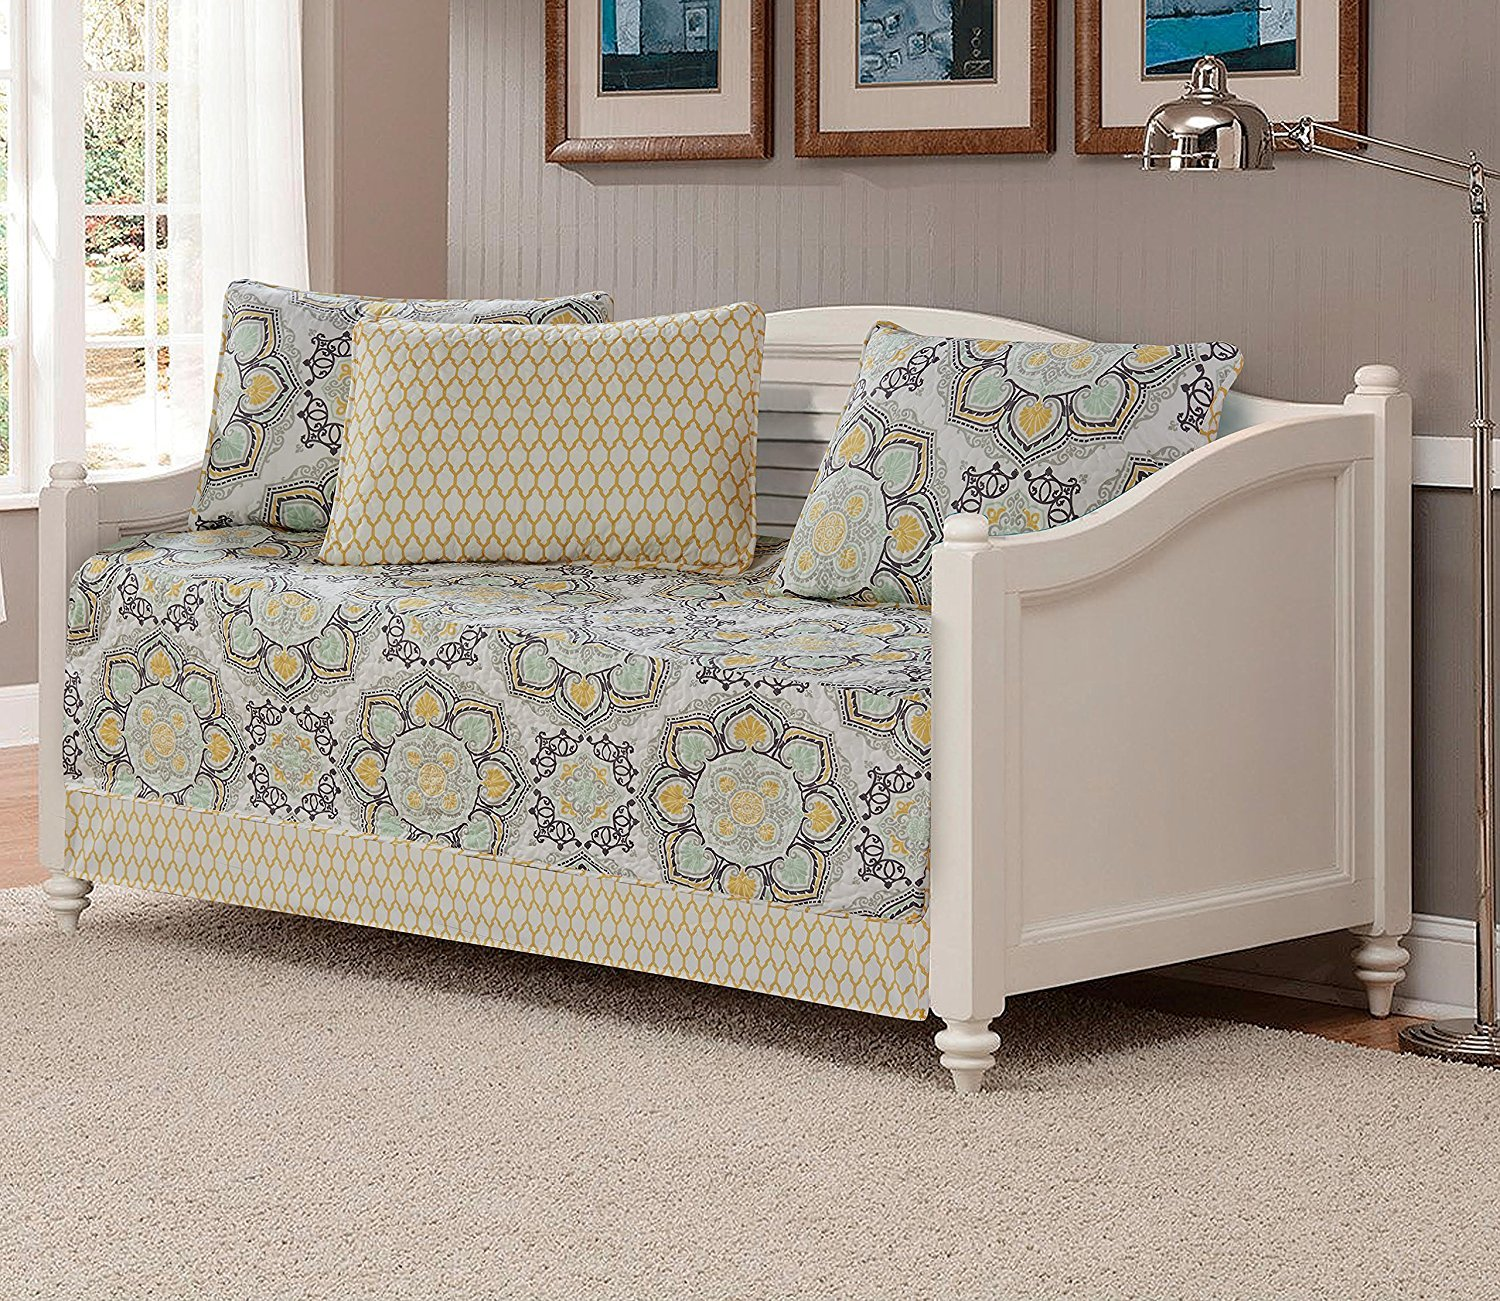 5pc Daybed Cover Set Reversible Bedspread Medallion Print Yellow White Green Light Grey